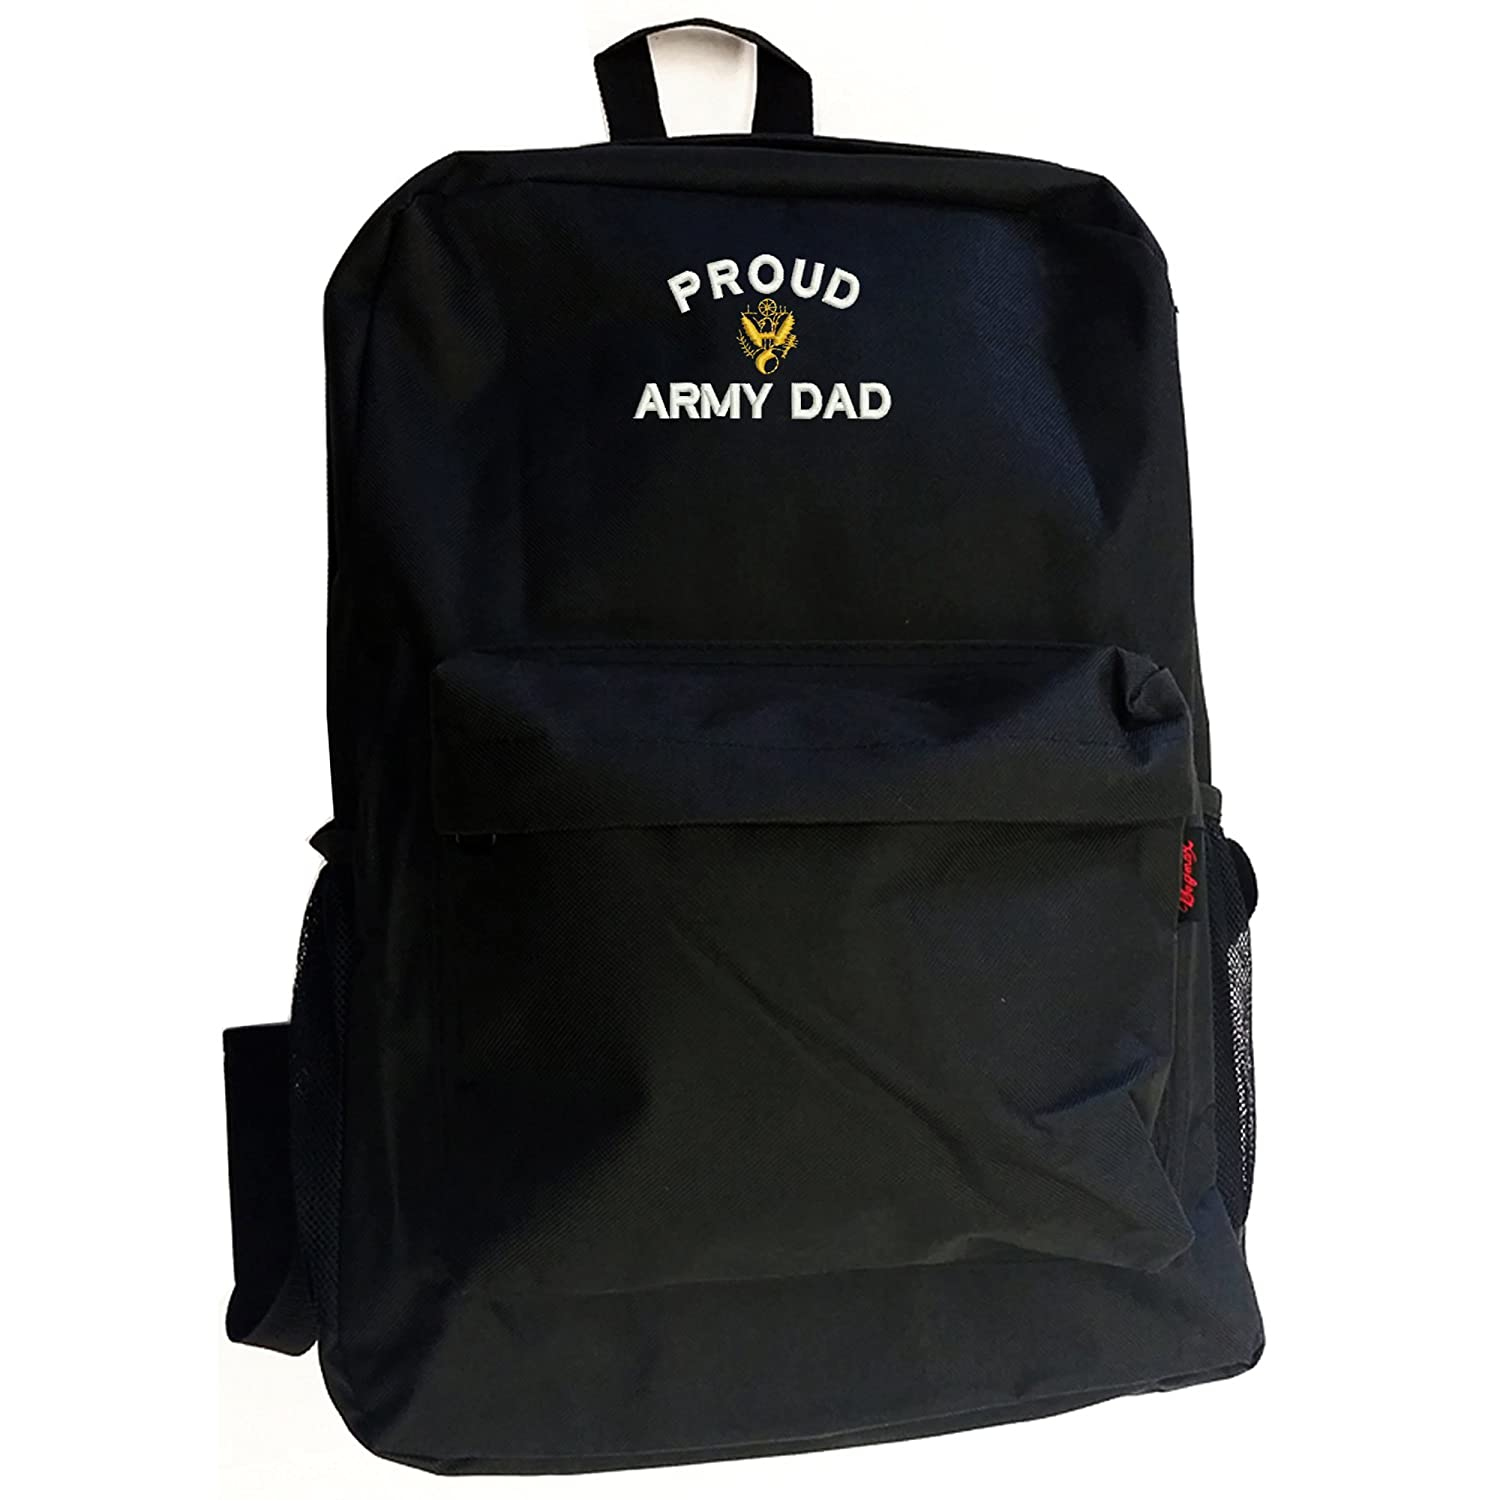 Proud Army Dad Military Backpack durable service